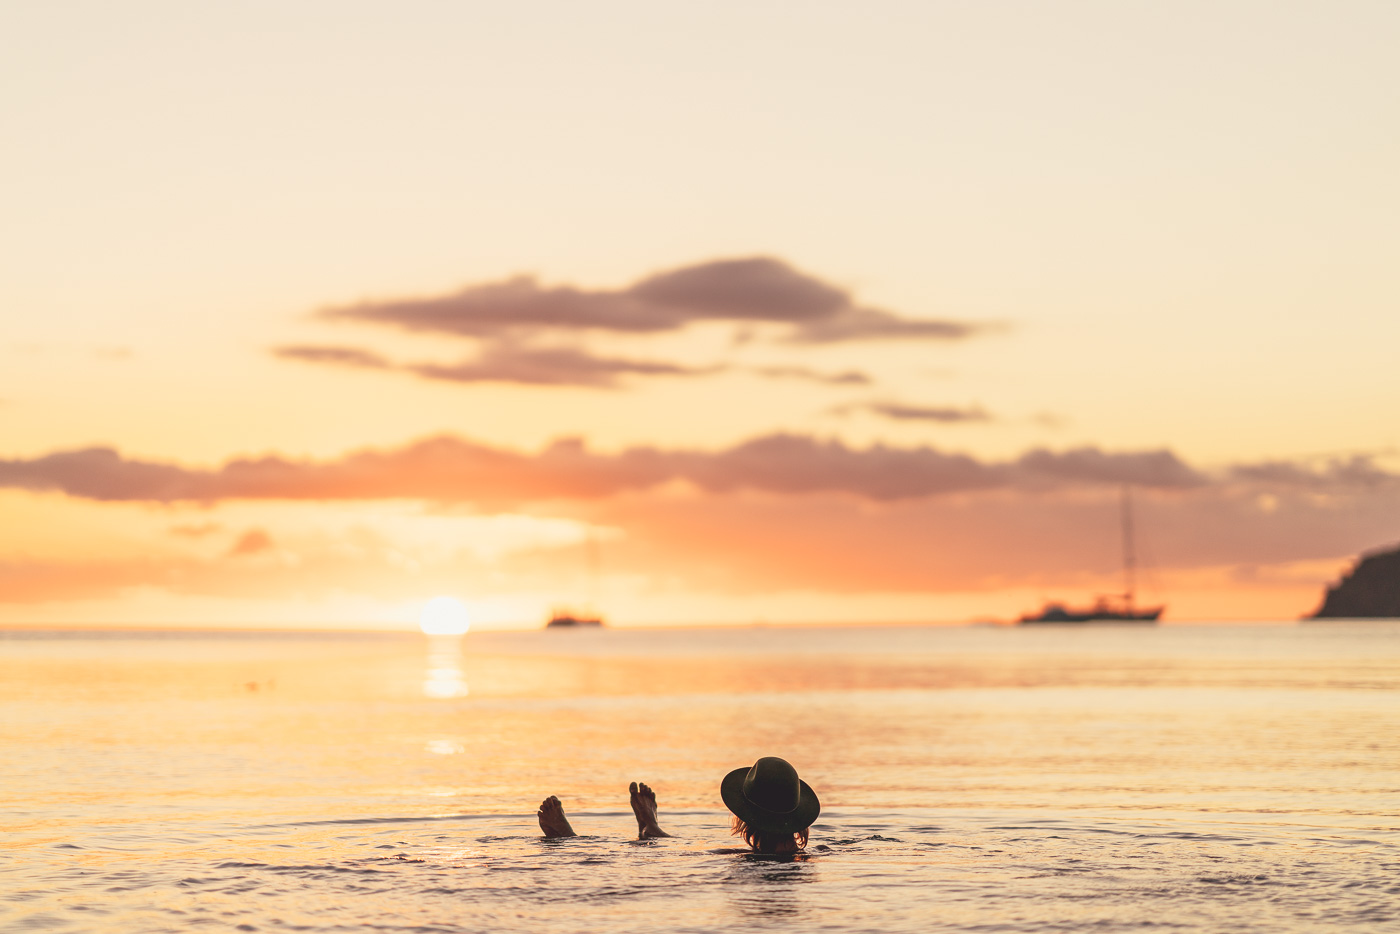 Laying in the ocean while watching sun set on the horizon on Great Barrier Island in New Zealand. Photo by Sony Ambassador Stefan Haworth